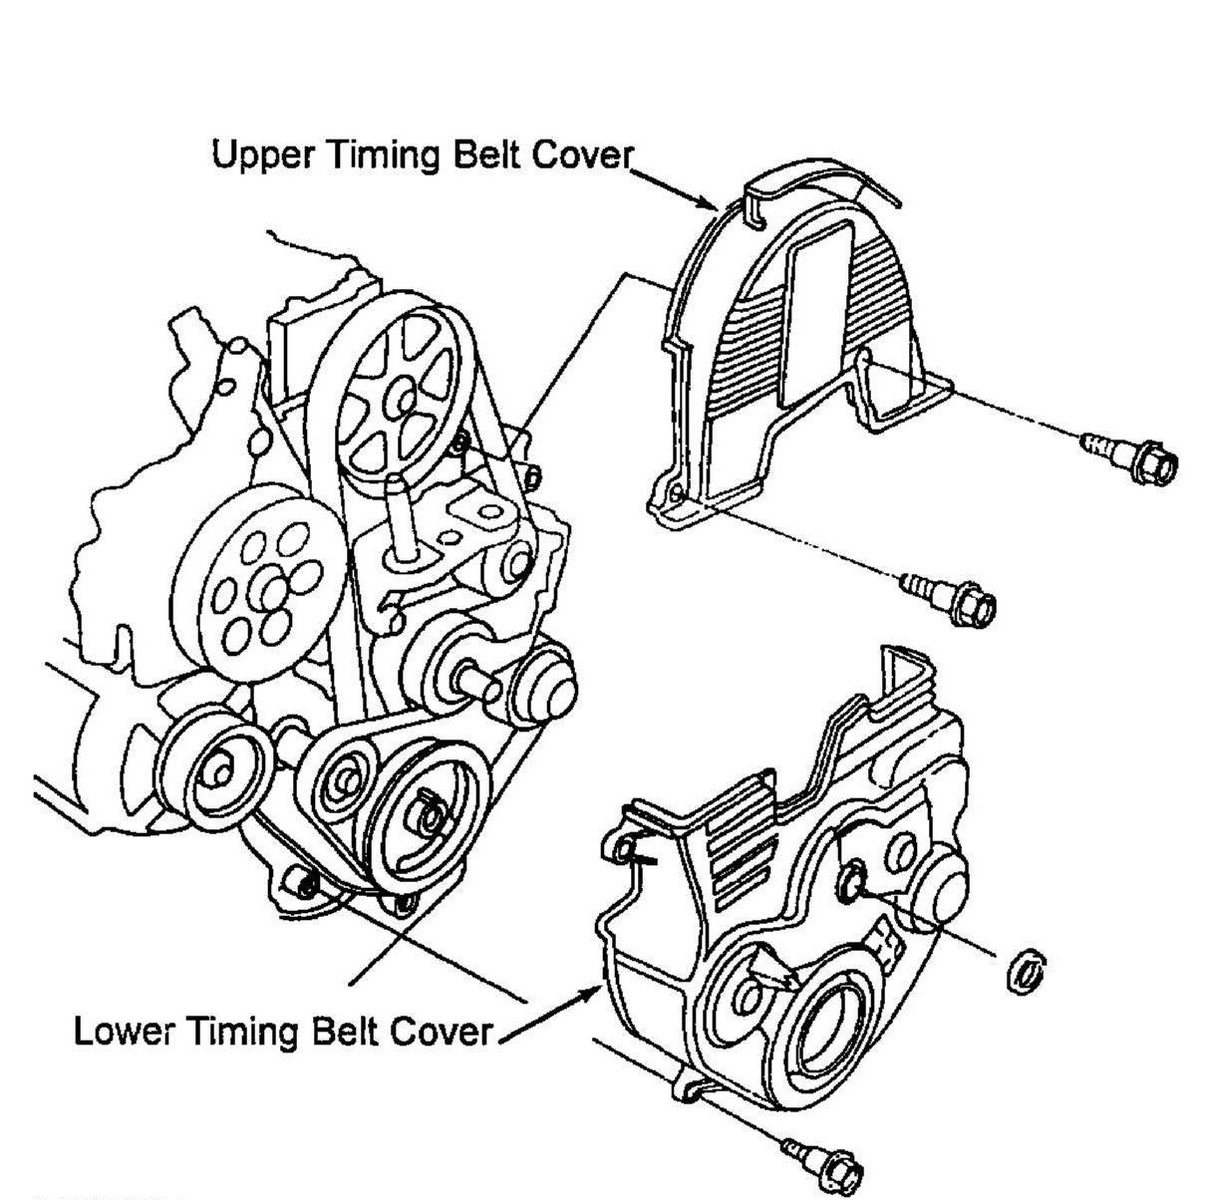 2001 Honda Pport Engine Diagram - Owner Manual & Wiring ... on wiring diagram for 2005 buick lesabre, wiring diagram for 1996 honda accord, wiring diagram for 2002 honda accord, wiring diagram for 2000 honda accord, wiring diagram for 2000 gmc jimmy, wiring diagram for 1997 buick lesabre, wiring diagram for 2006 honda accord, wiring diagram for 1999 jeep grand cherokee, wiring diagram for 1998 honda accord, wiring diagram for 1992 honda civic, wiring diagram for 1998 jeep wrangler, wiring diagram for 1991 honda civic,